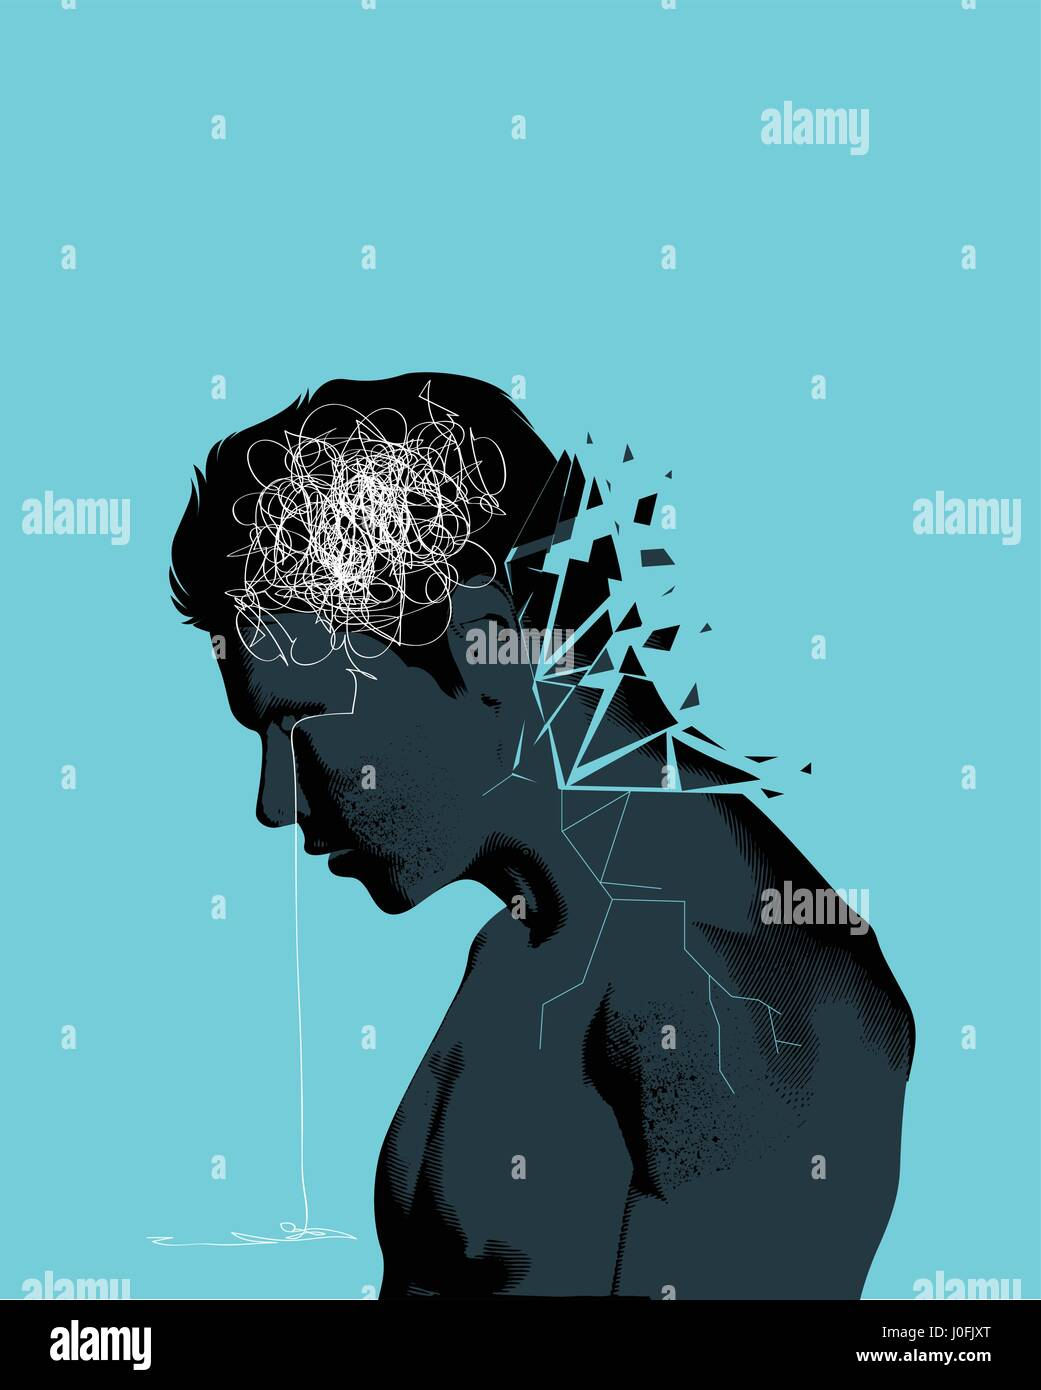 A man with his head lowered shattering showing mental health issues. Anxiety, depression and mindfulness awareness - Stock Vector